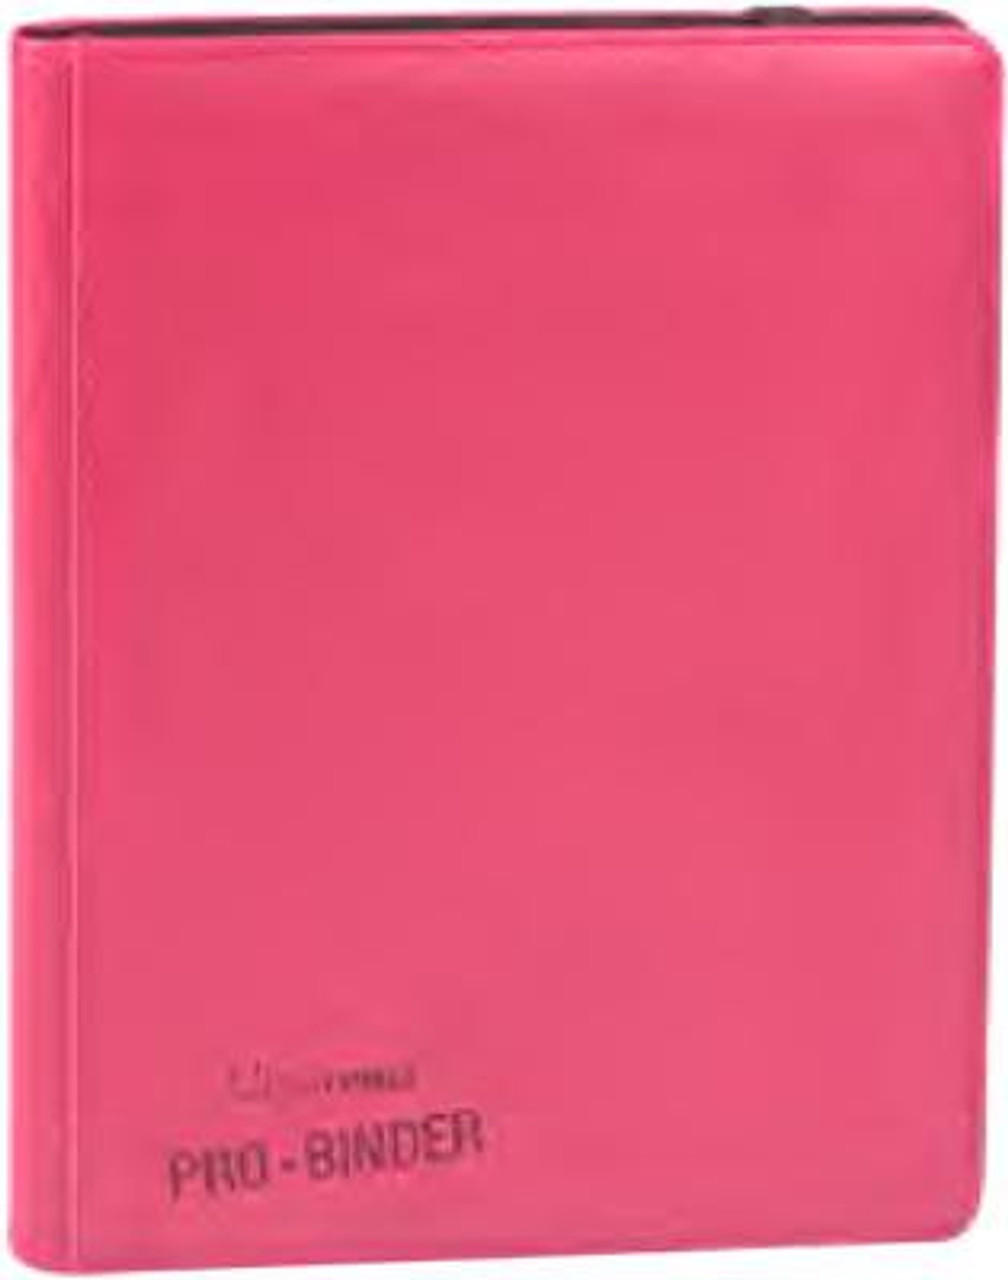 Ultra Pro Card Supplies Premium Pro-Binder Bright Pink 9-Pocket Binder